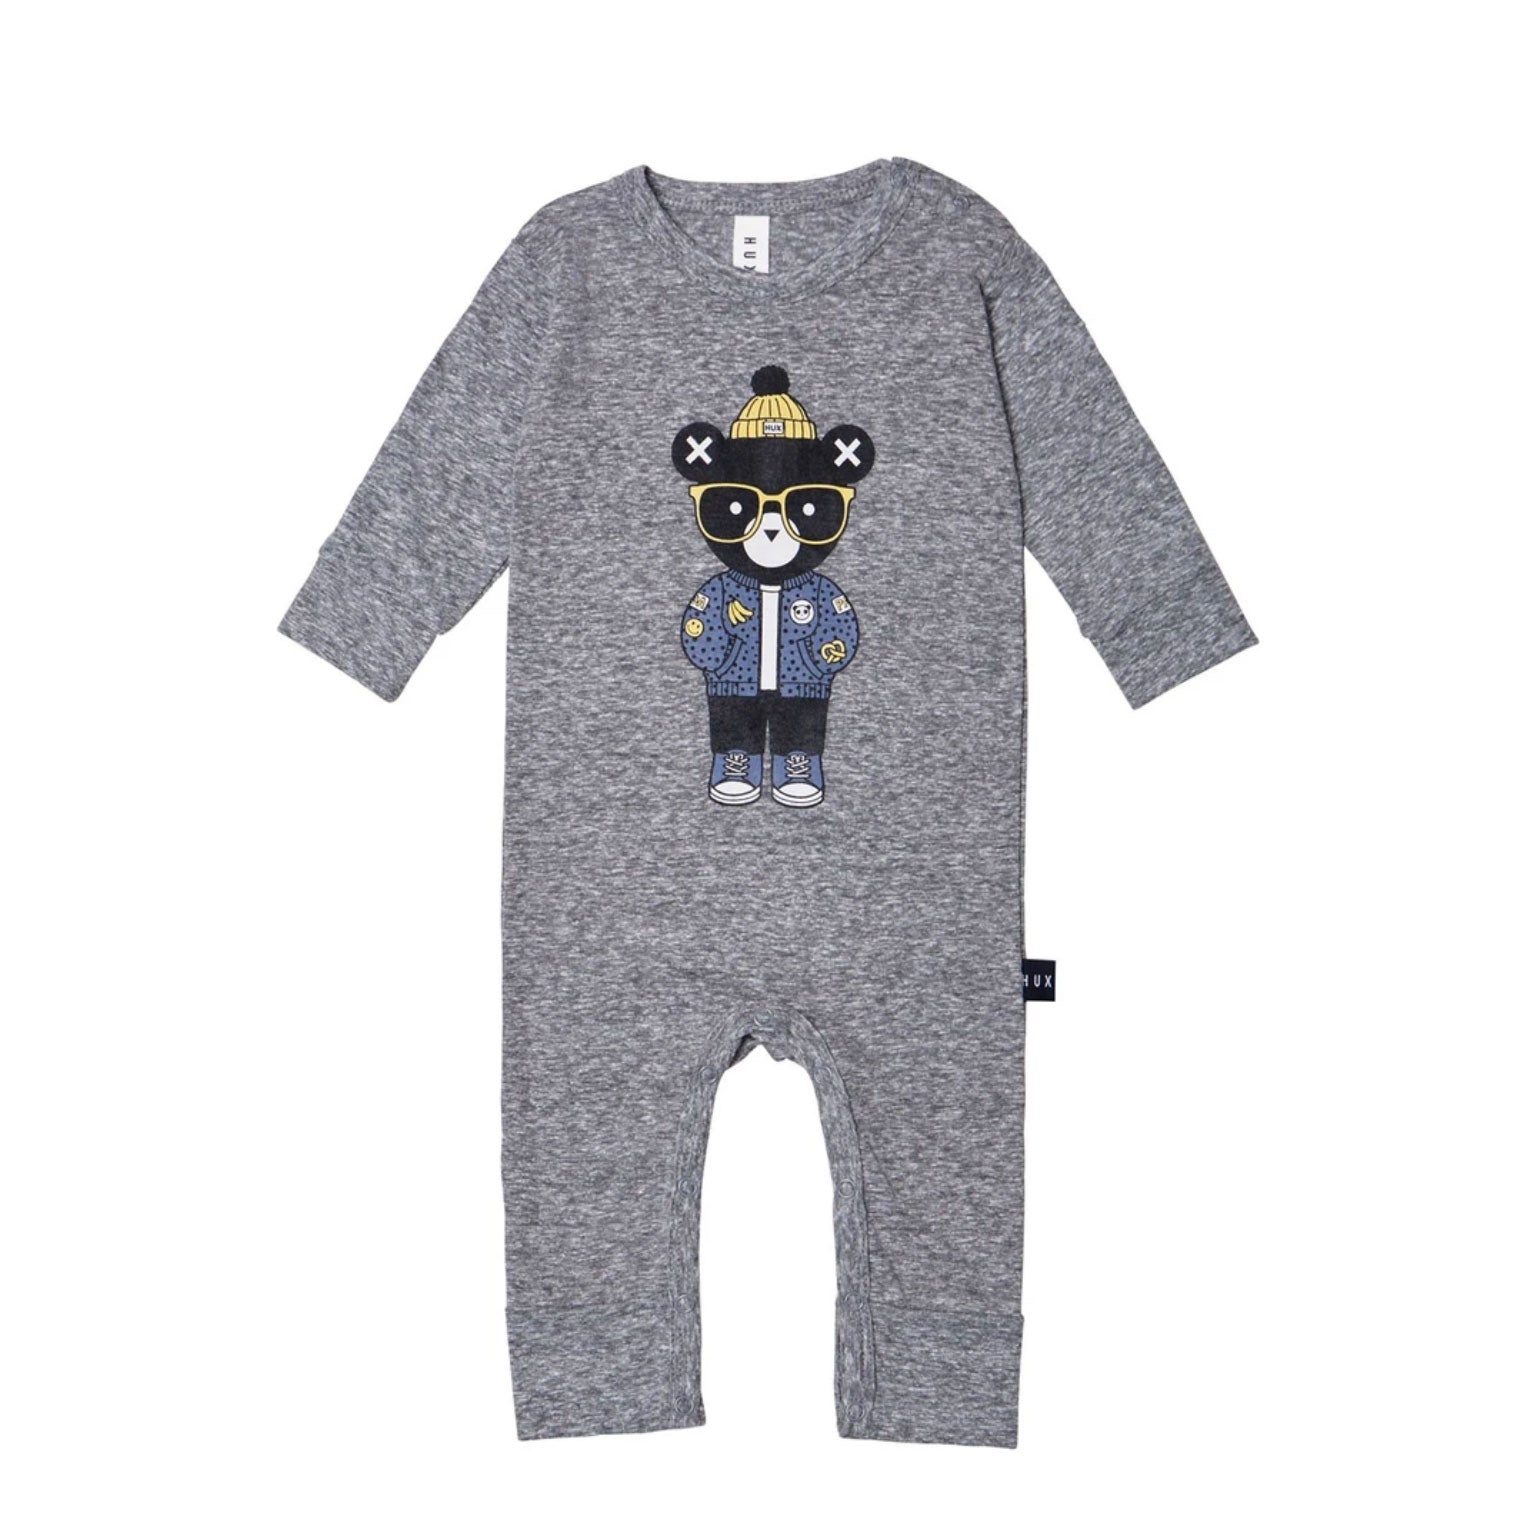 Huxbaby Bear Romper  at Bonjour Baby Baskets